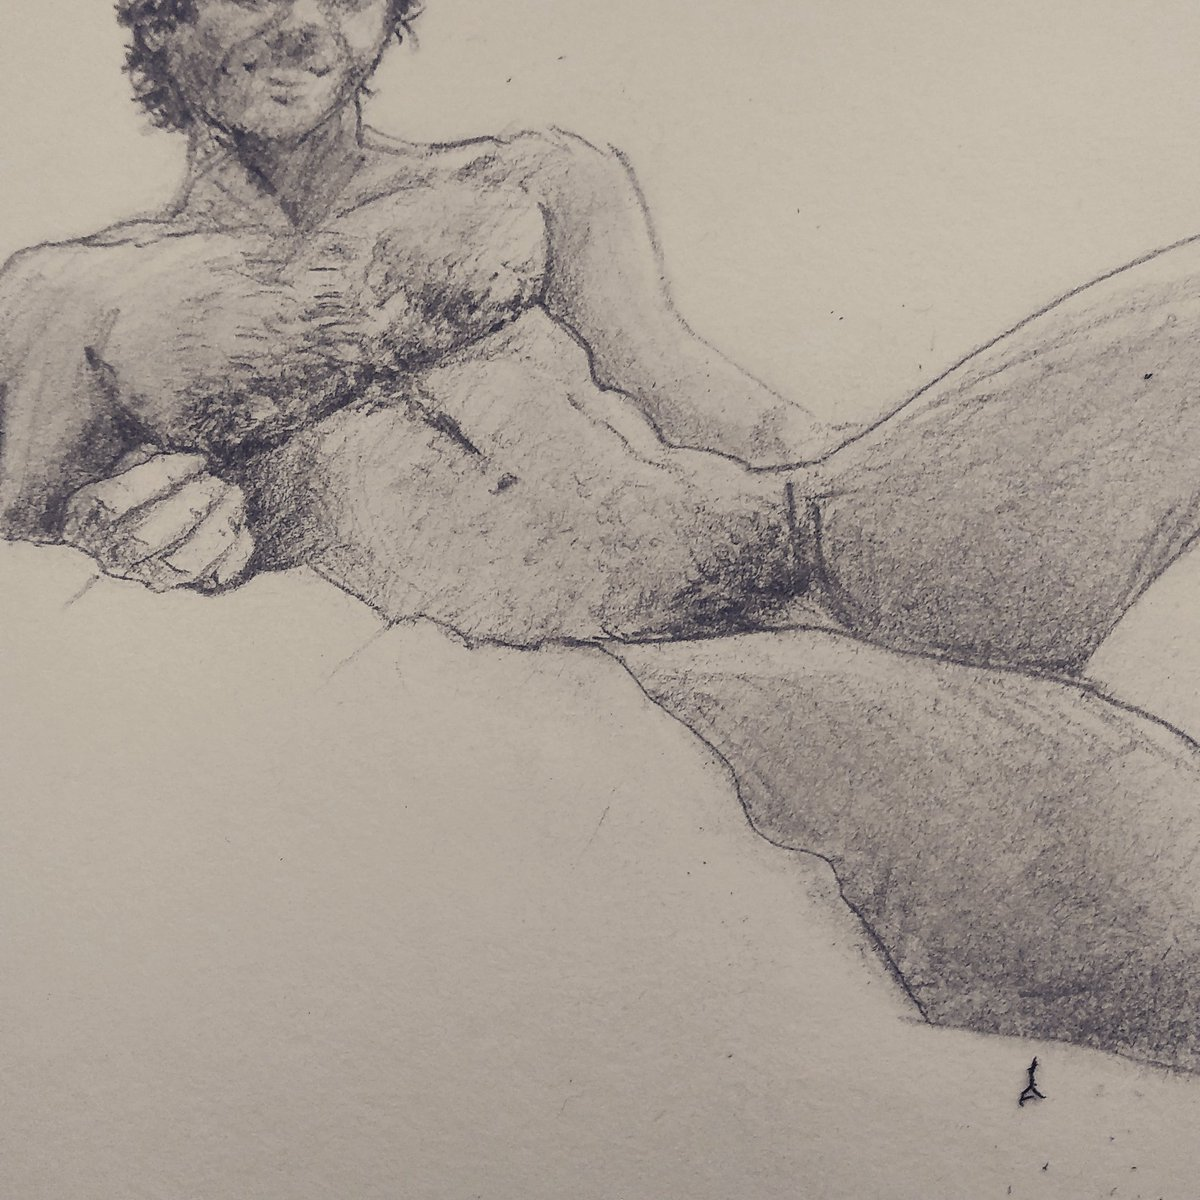 Of love making rose sketches a picture of that hot beefy italian guy no well this sketch reminded me of that scene